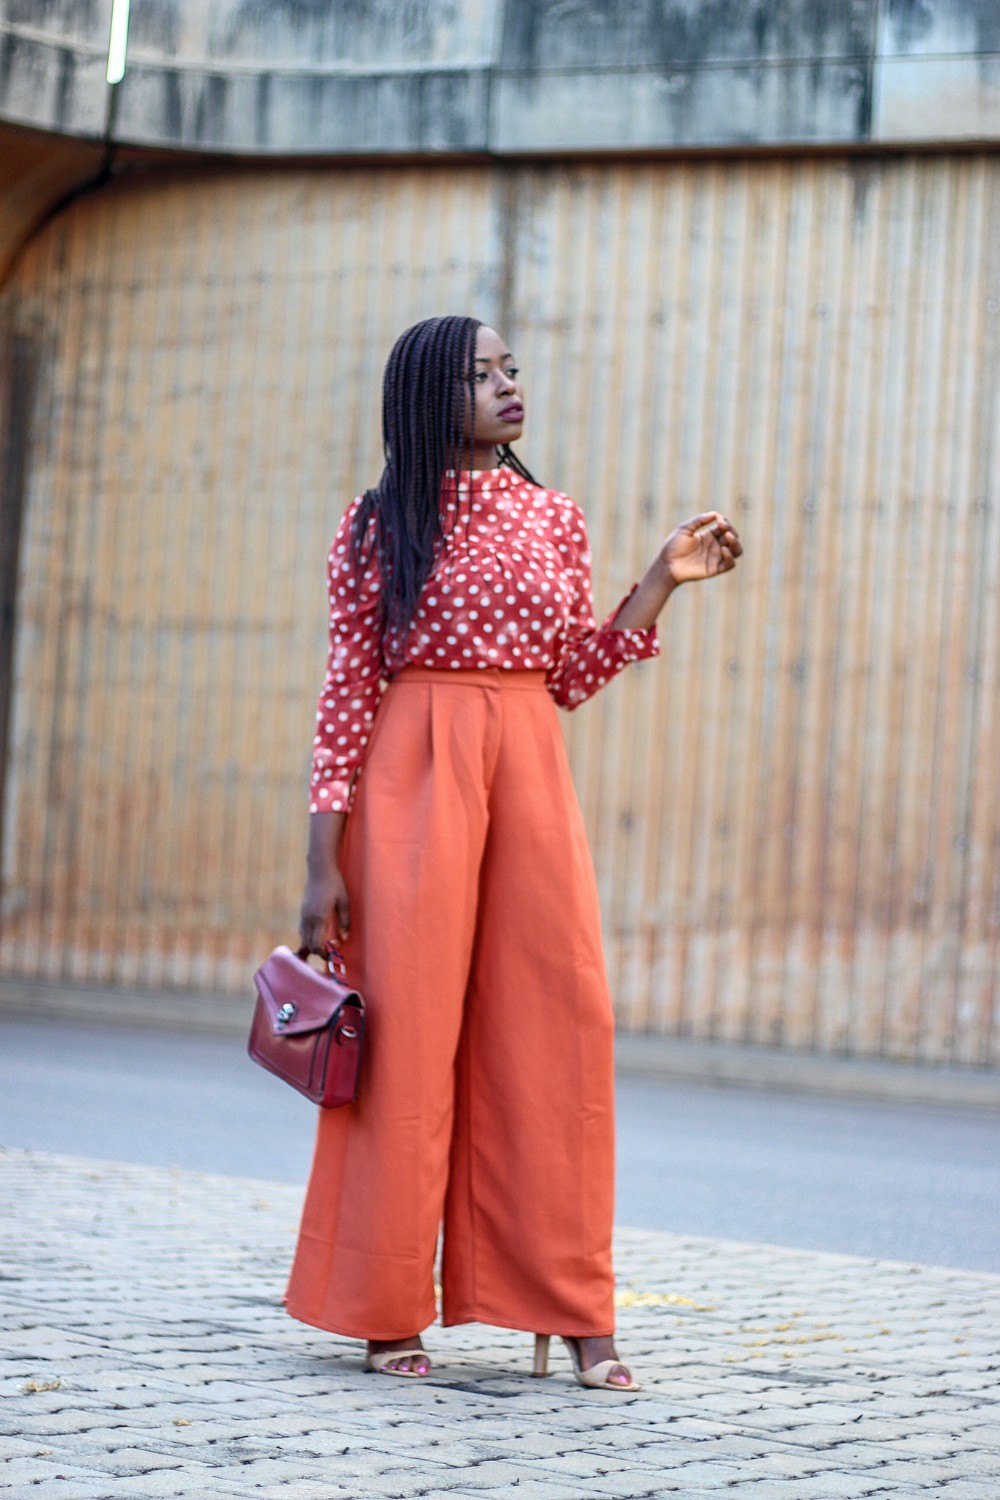 Polka-dot top and orange high waist trousers